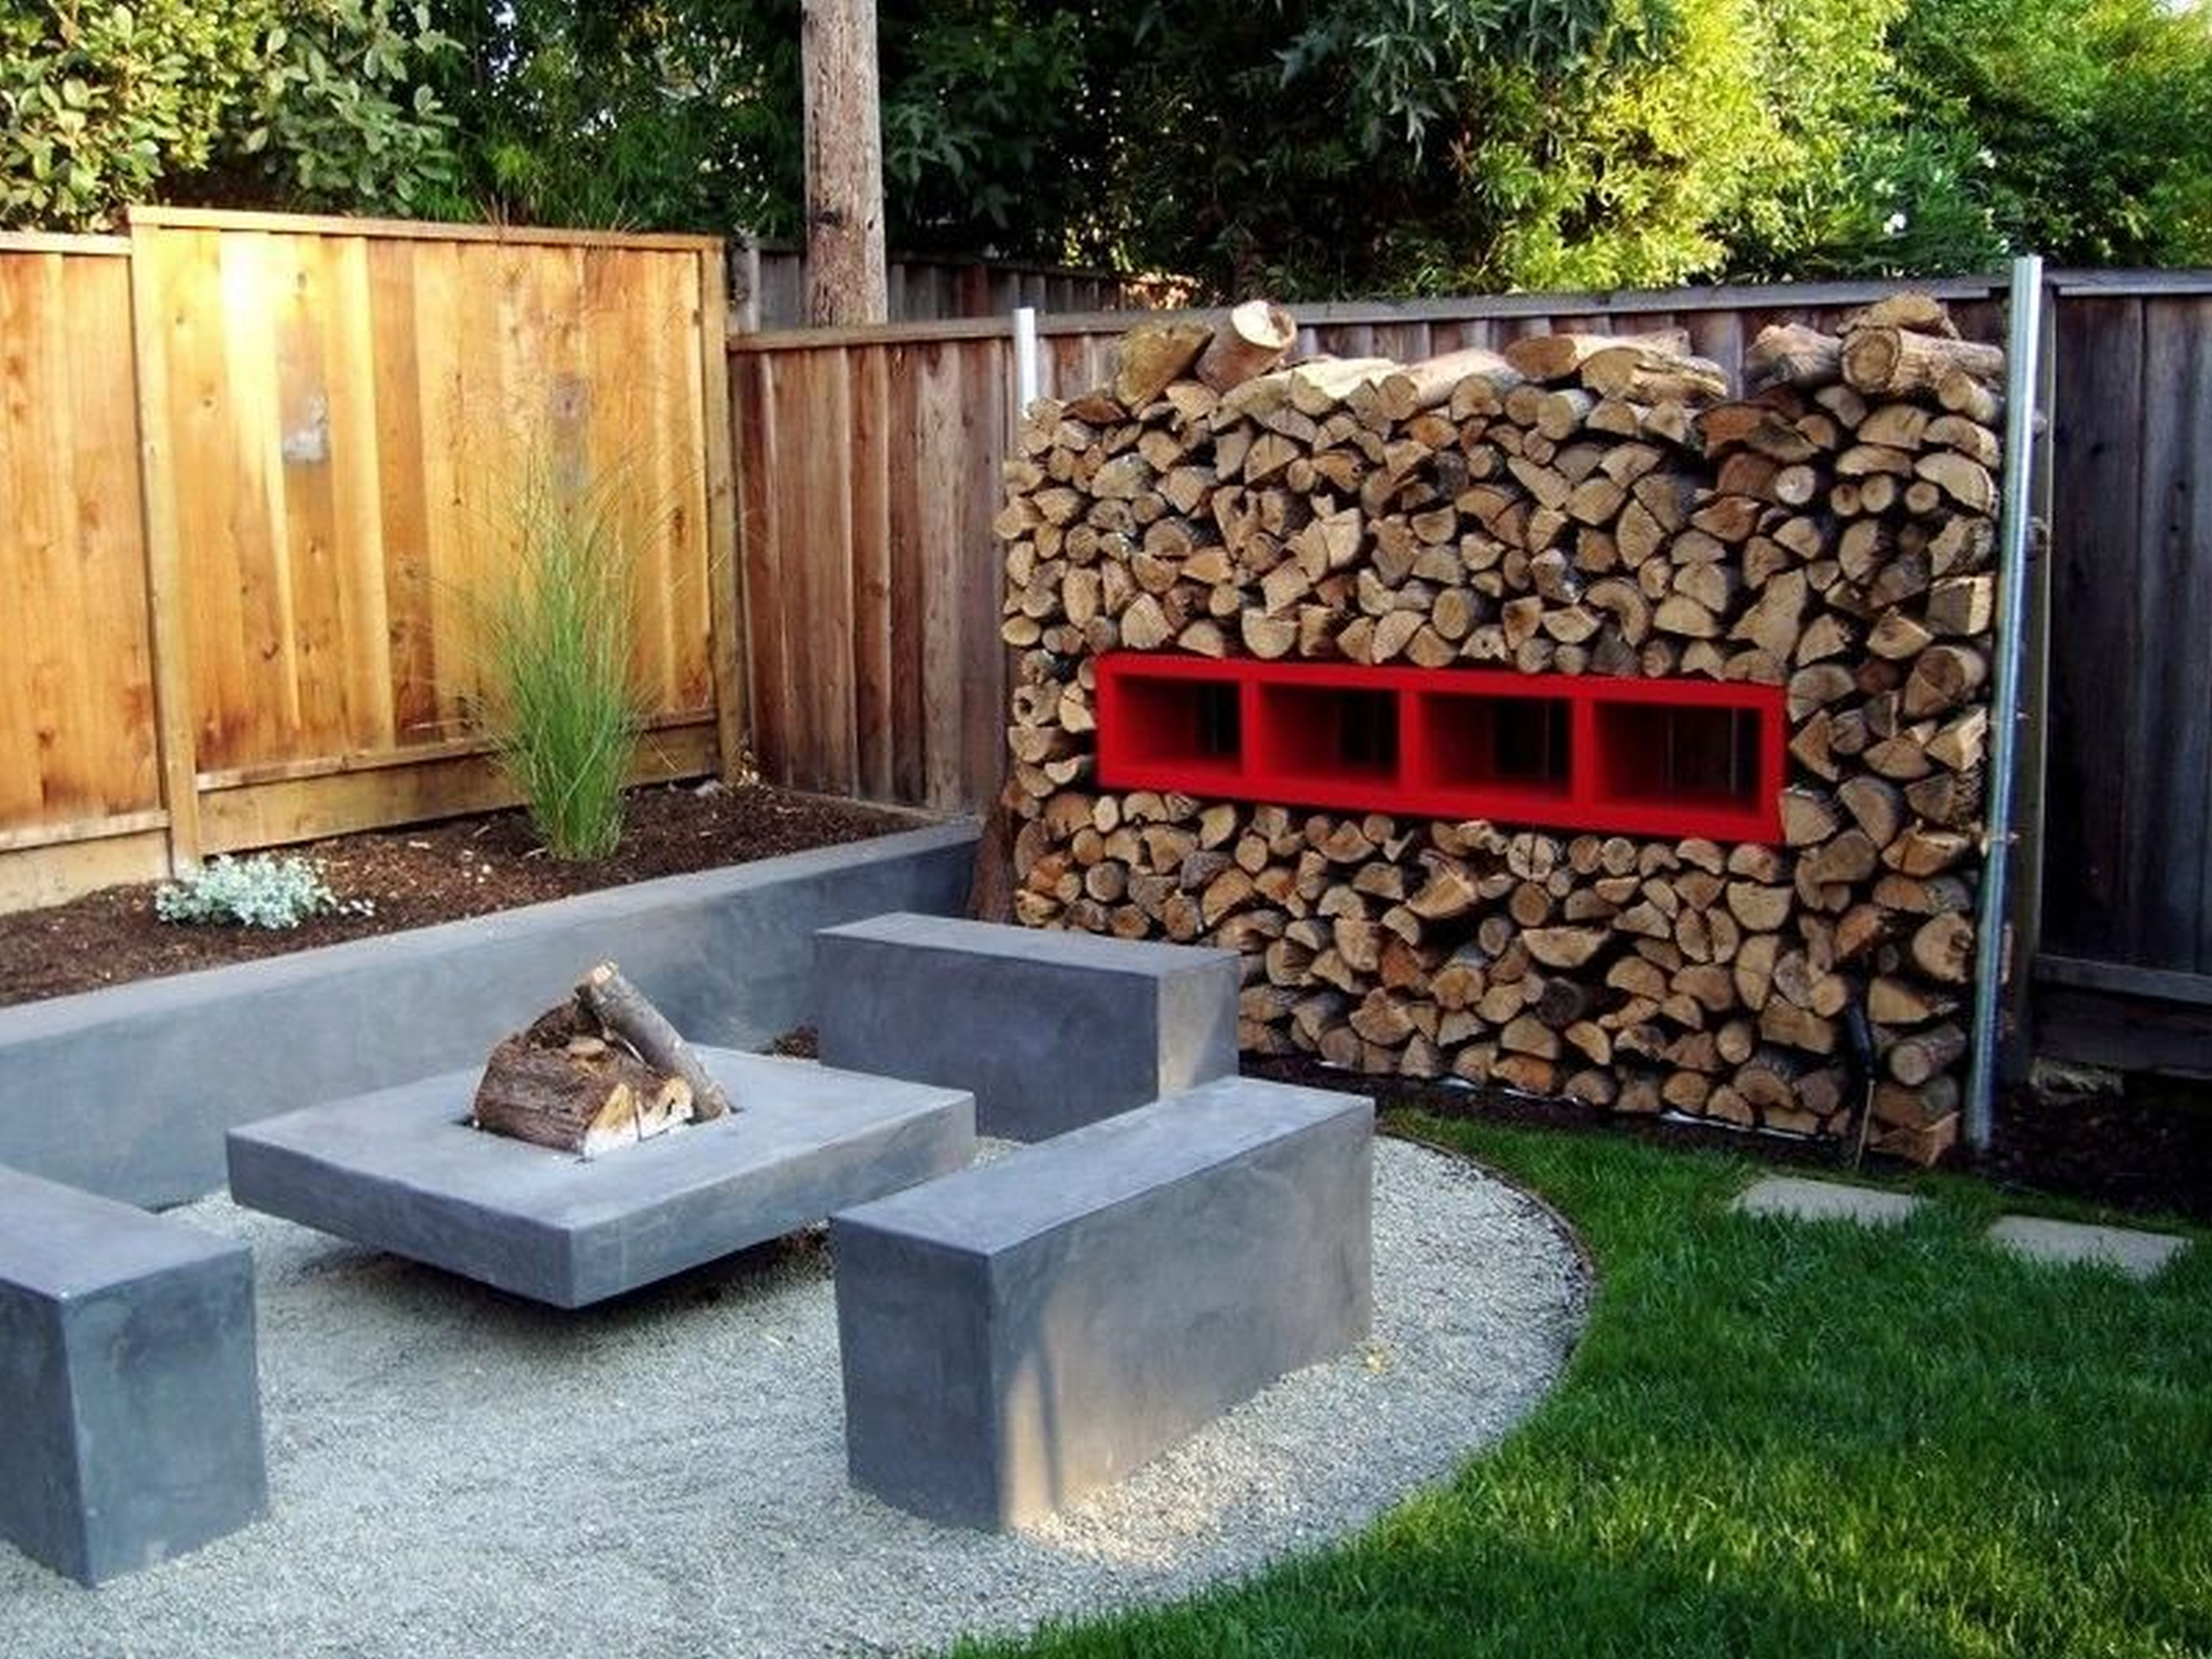 Tiny Backyard Ideas Unique Garden Design For Small Backyards Best with regard to Great Small Backyard Ideas